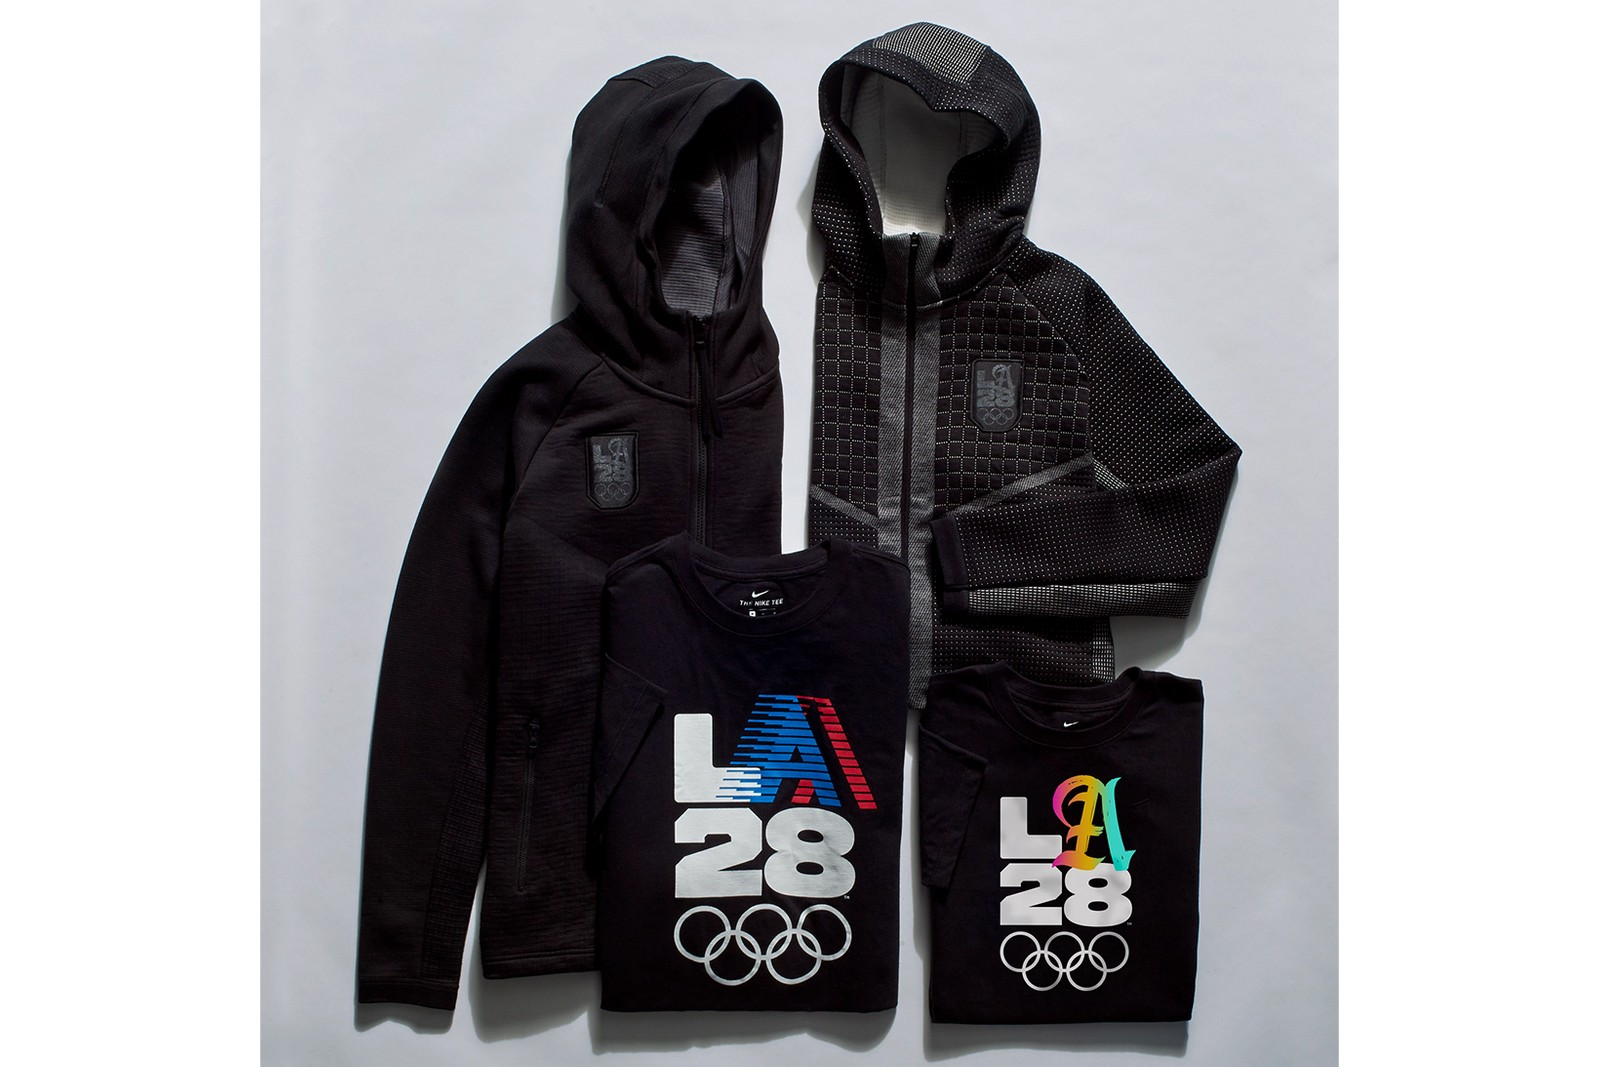 2028 los angeles olympics logo billie eilish